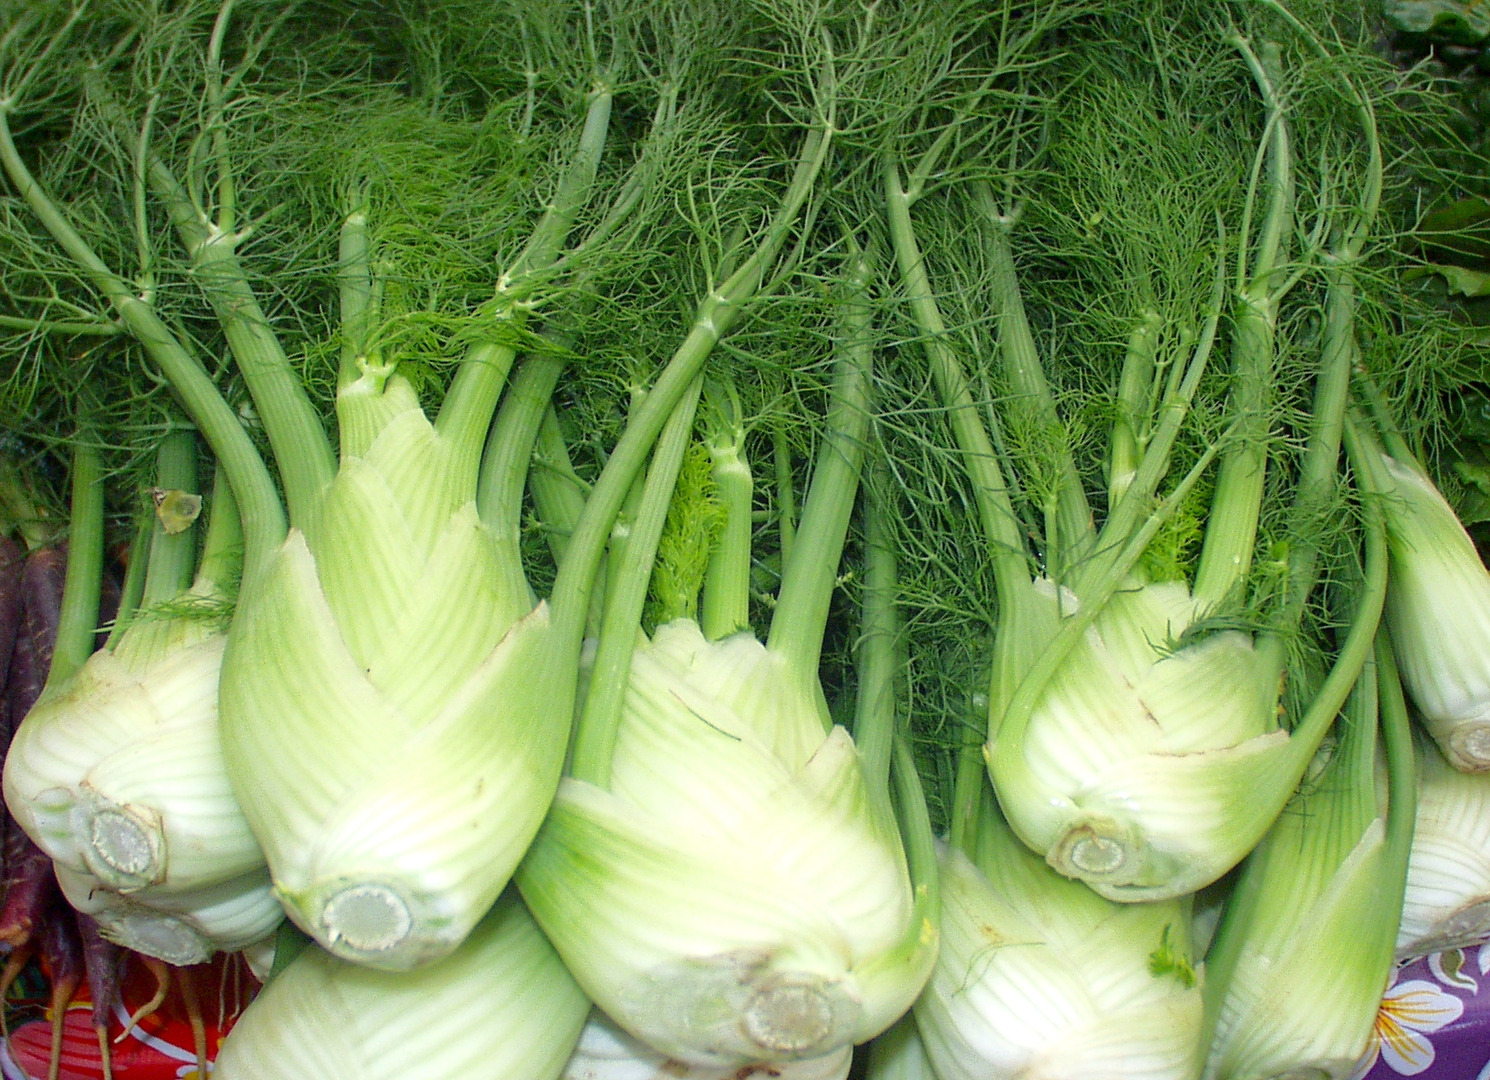 Oxbow Farm fennel. Photo copyright 2009 by Zachary D. Lyons.